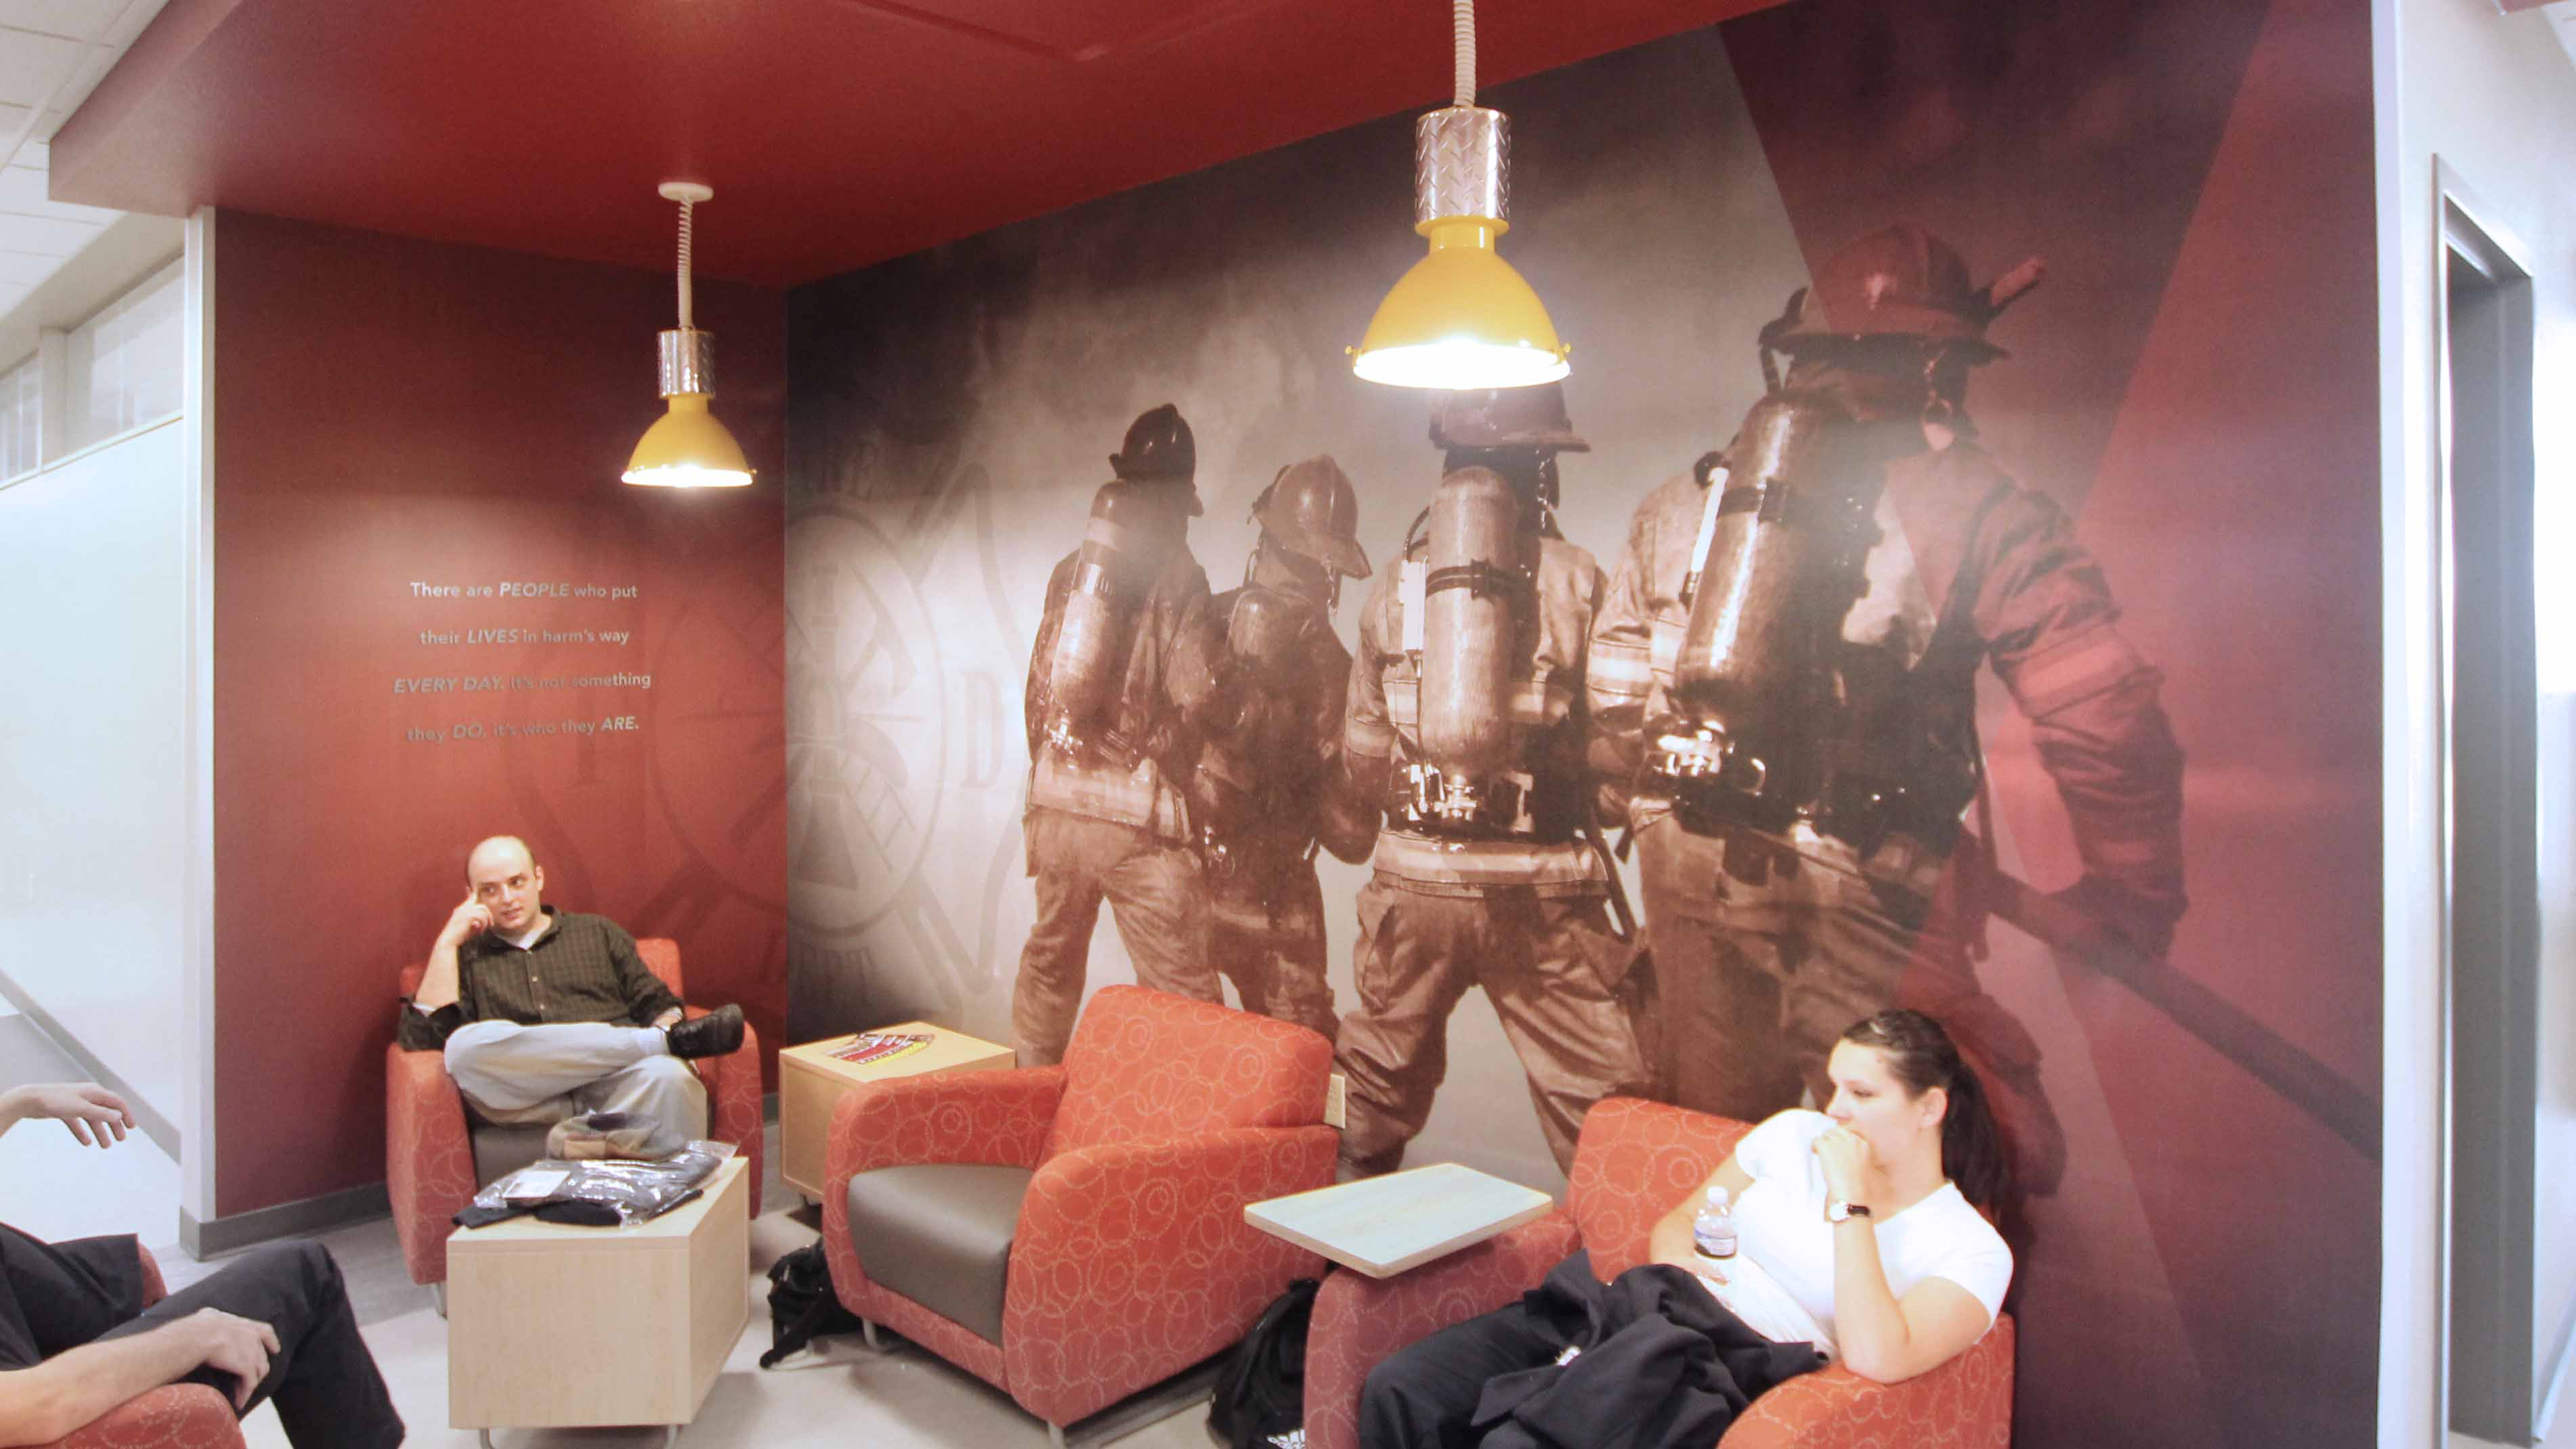 Fox Valley Technical College firefighter Mural in Hallway with students sitting against it